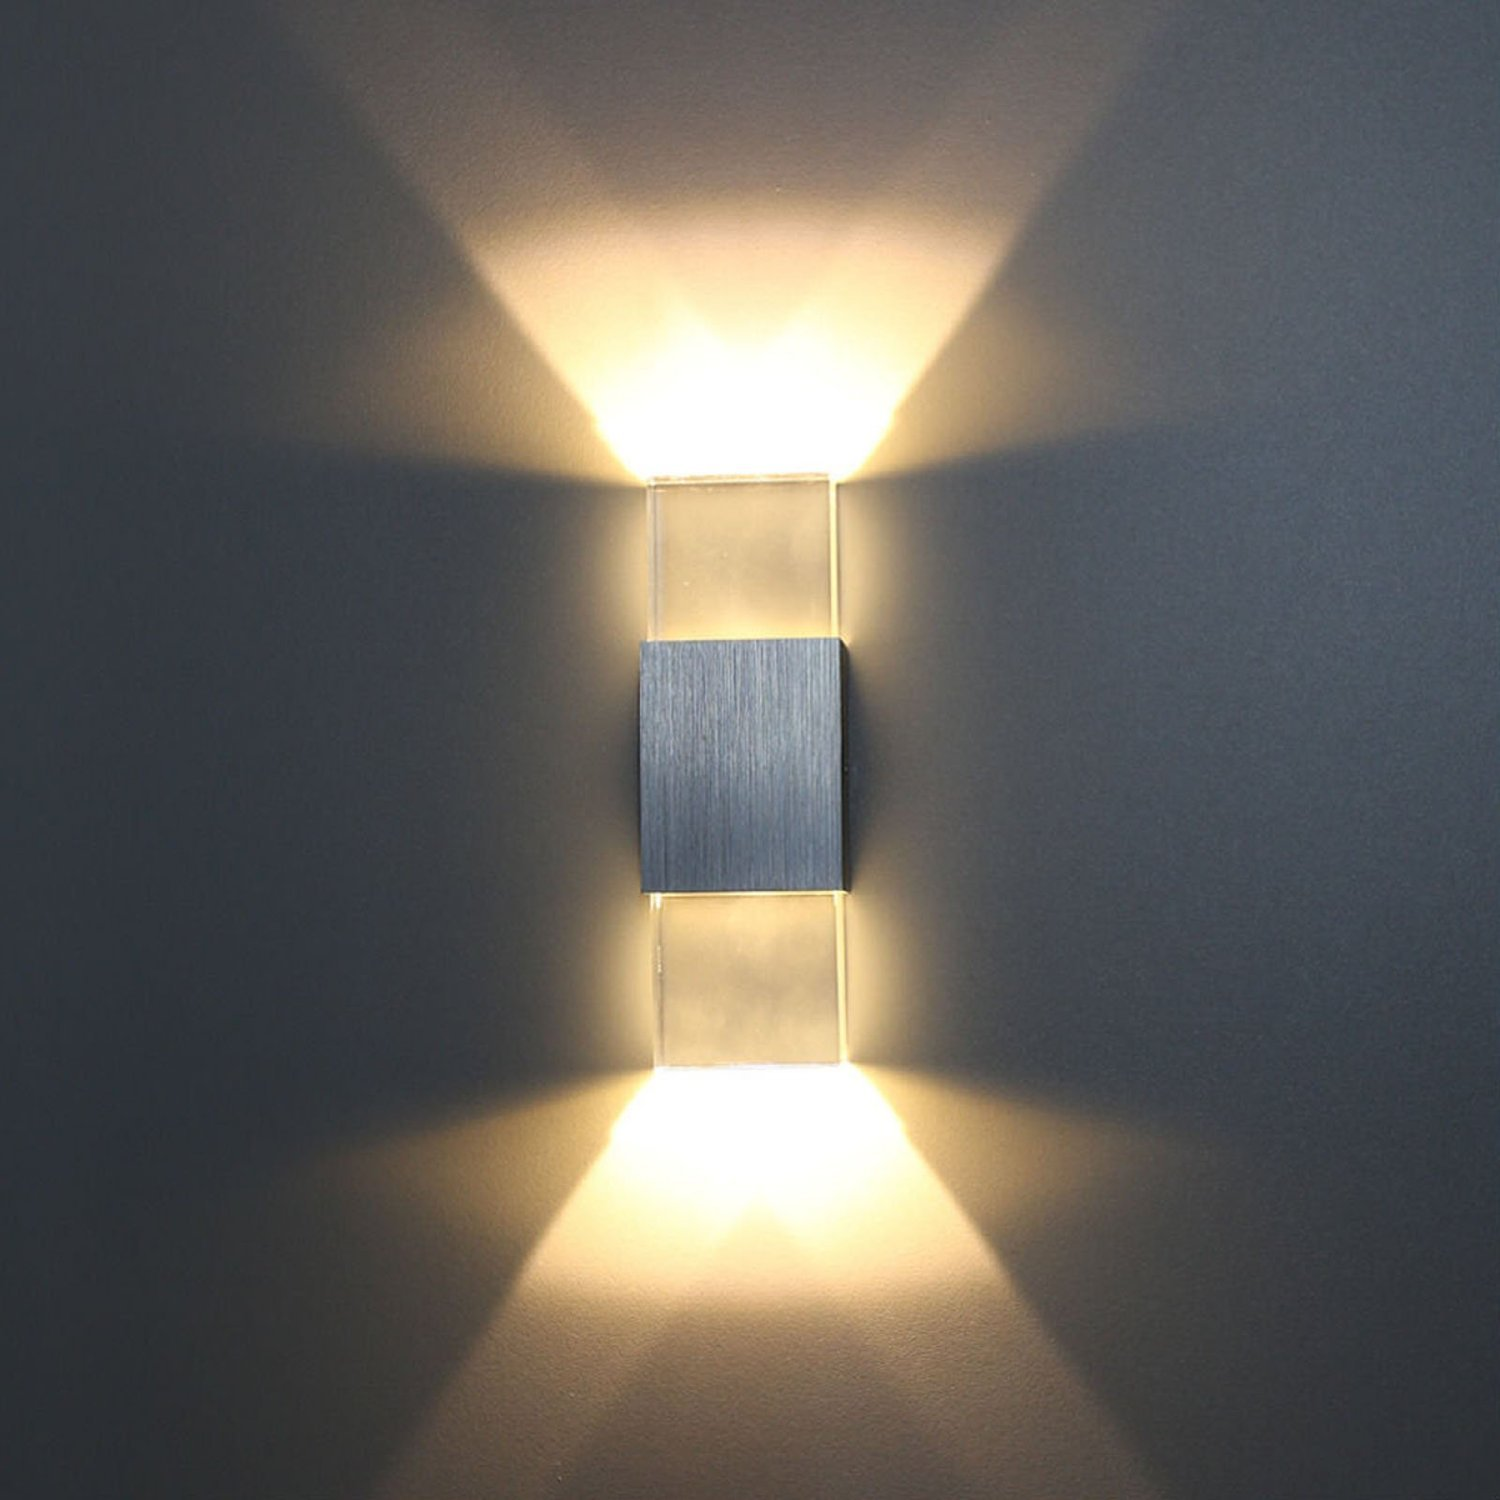 Led Wall Sconce Sunsbell Wall Lamp Indoor Up Down Ligting Fixtures ...